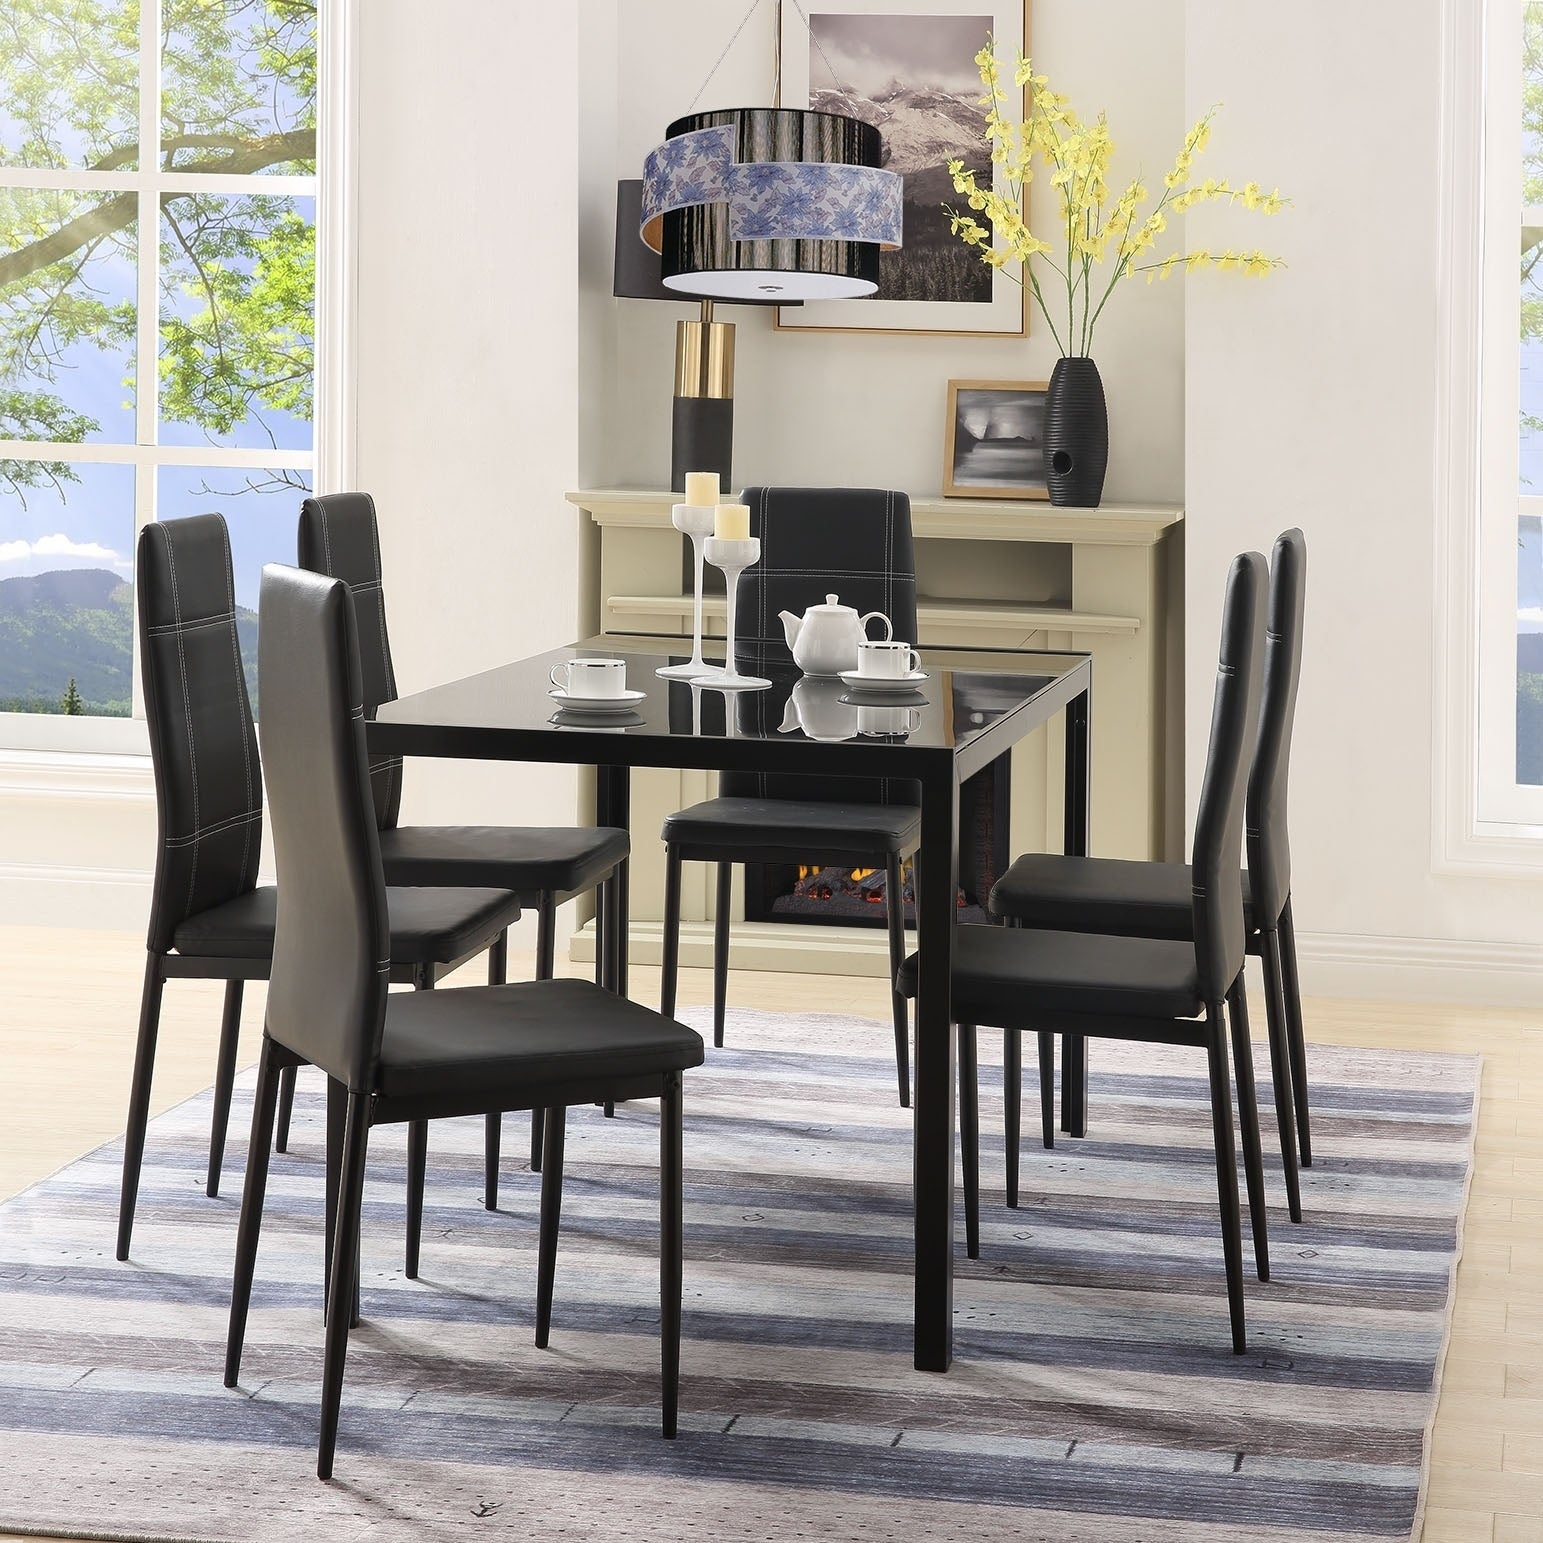 Merax 7 Piece Dining Set Glass Top Metal Table 6 Person Table And Chairs Within Most Popular Maynard 5 Piece Dining Sets (Photo 13 of 20)